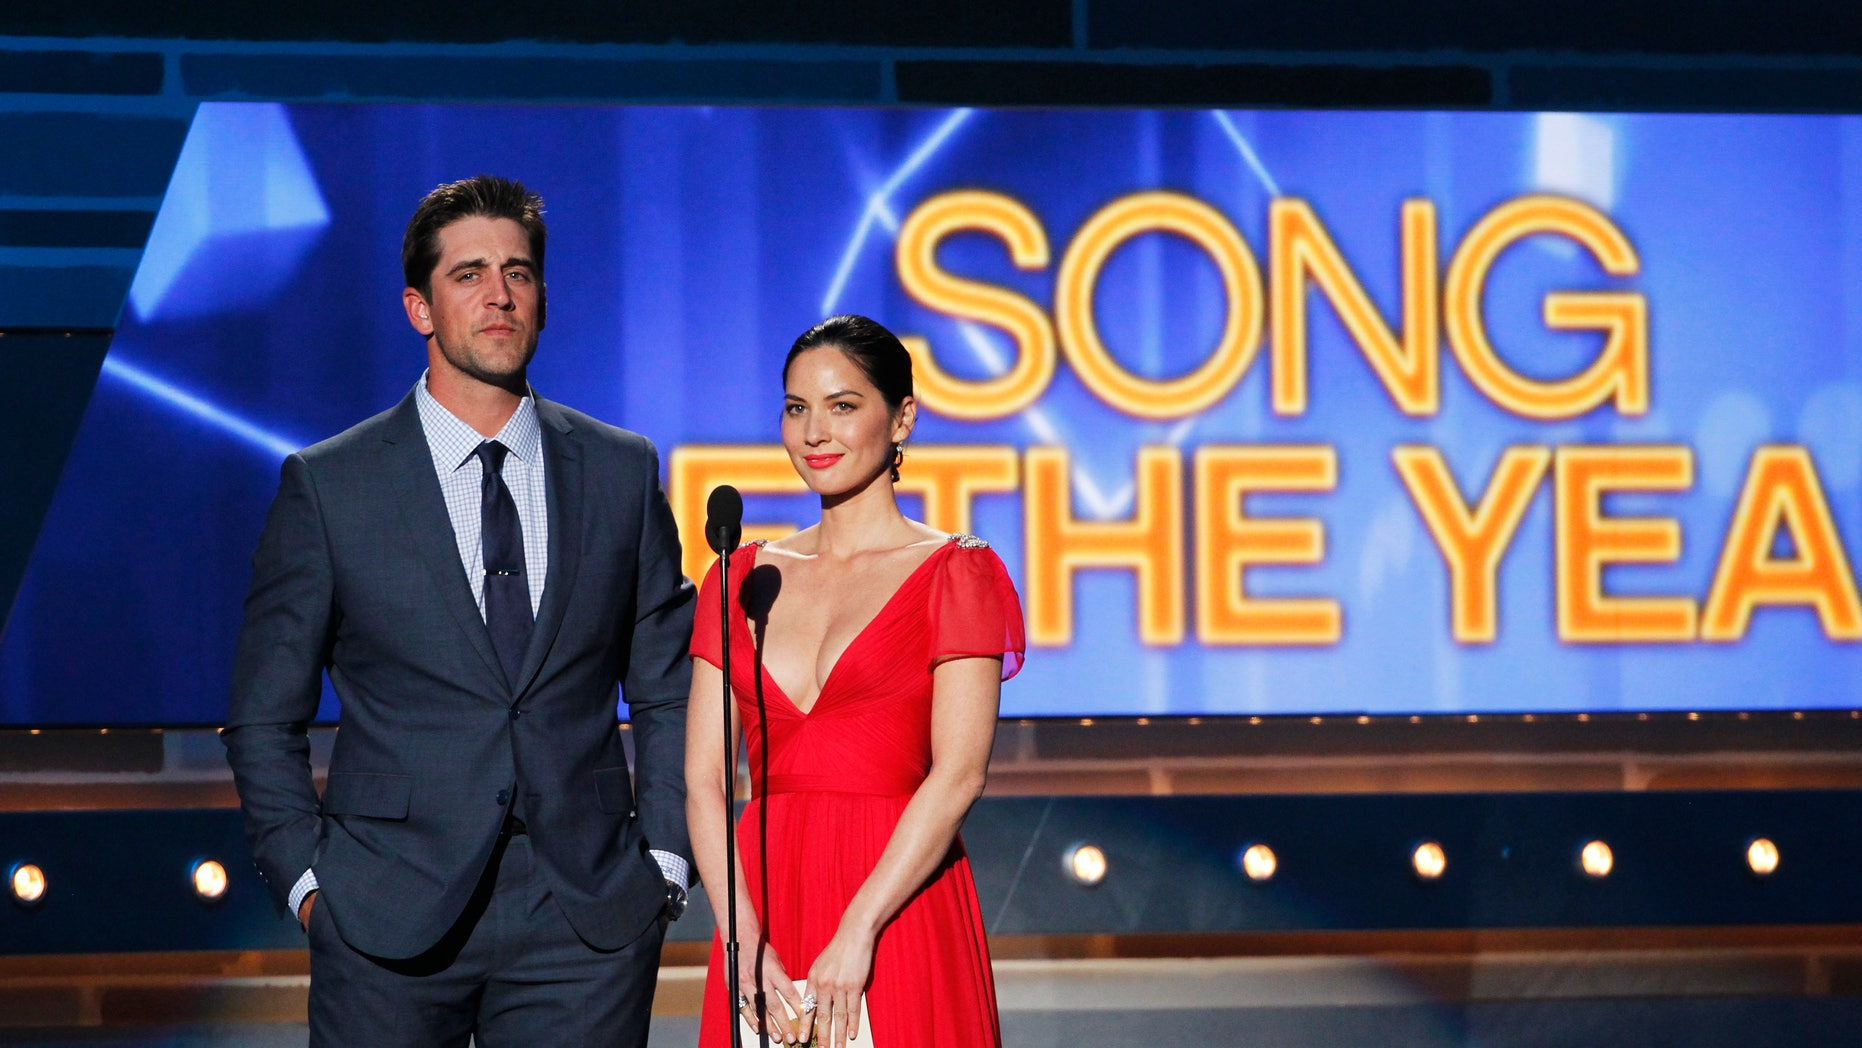 NFL football player Aaron Rogers and actress Olivia Munn present the Song of the Year Award on stage at the 49th Annual Academy of Country Music Awards in Las Vegas, Nevada April 6, 2014.  REUTERS/Robert Galbraith (UNITED STATES - Tags: ENTERTAINMENT)(ACMAWARDS-SHOW) - RTR3K72U